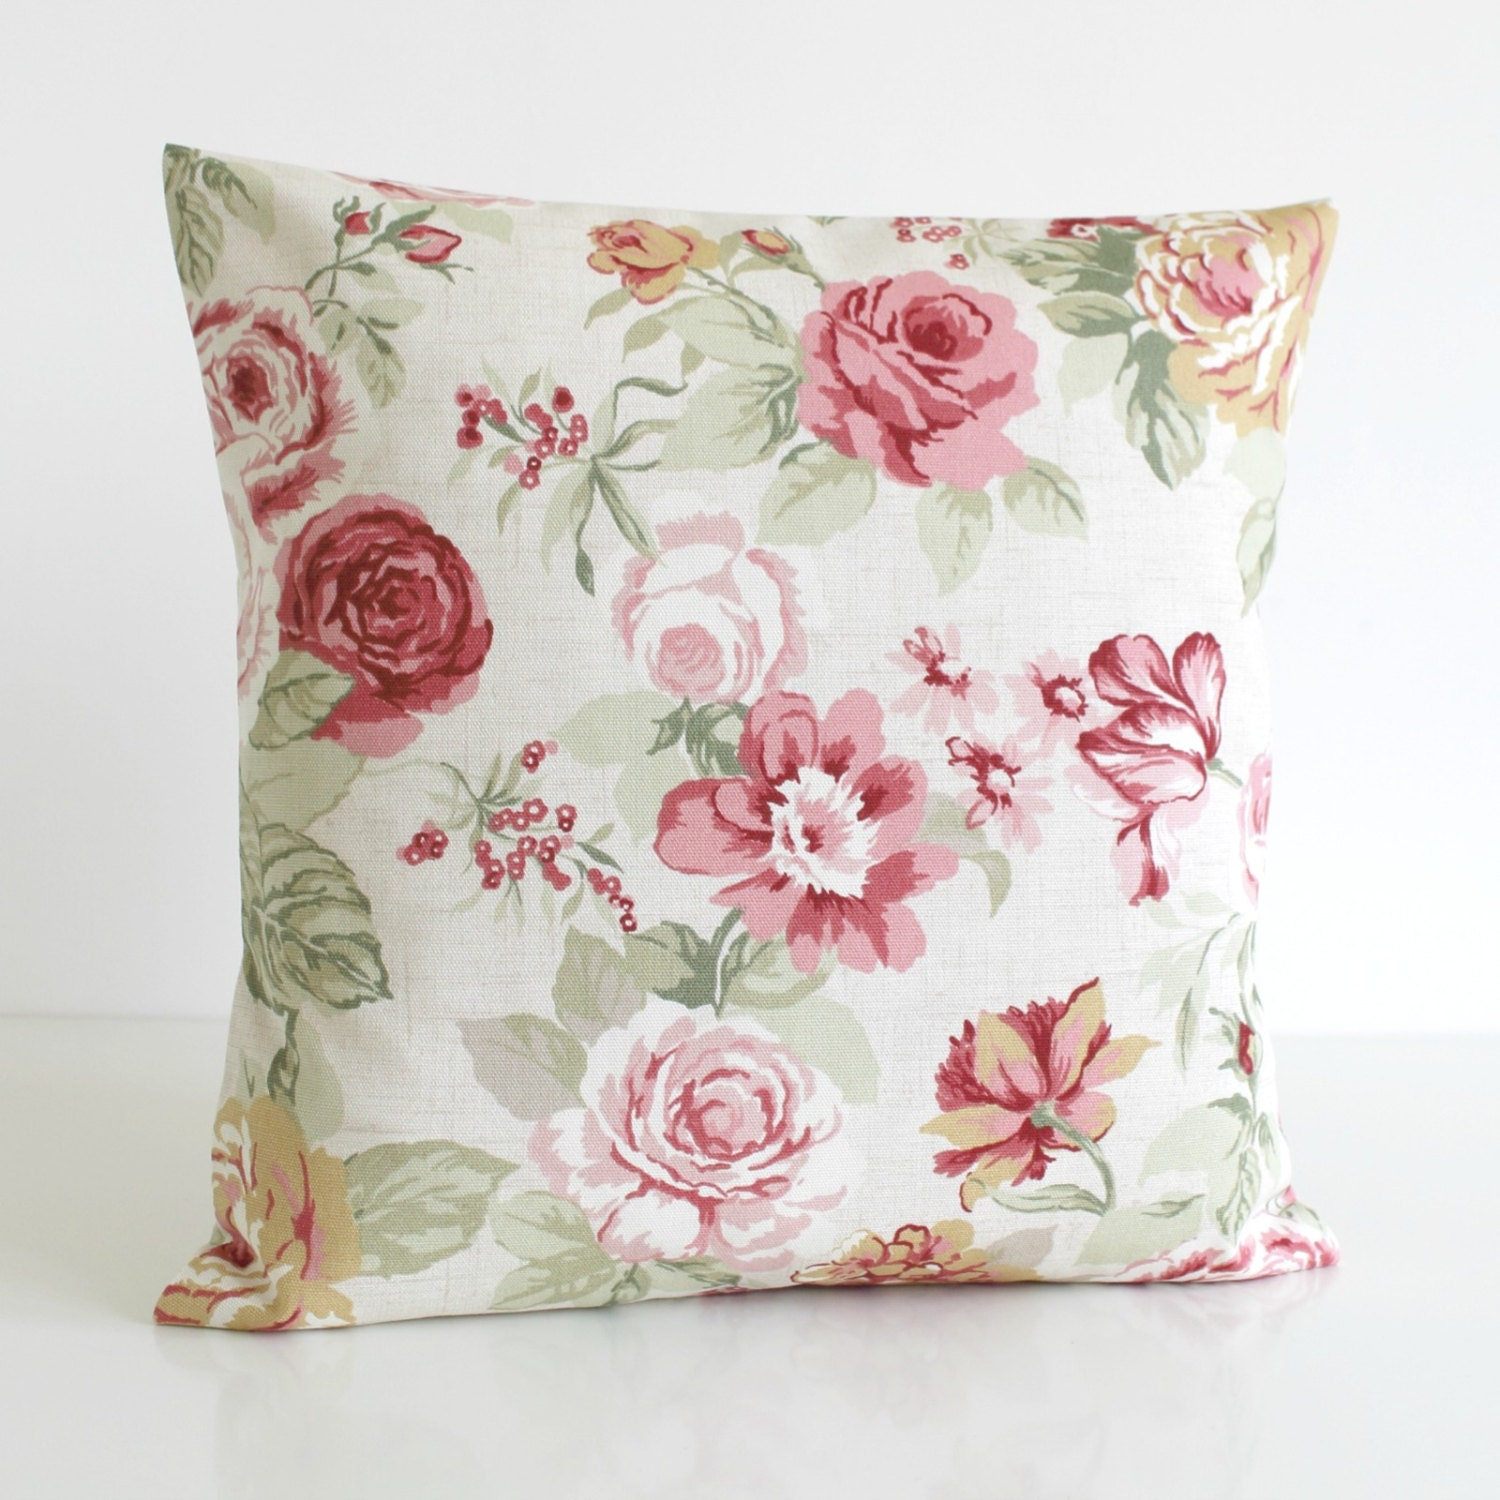 Shabby Chic Pillow Images : Shabby Chic Decorative Pillow Cover Floral Cushion by CoupleHome